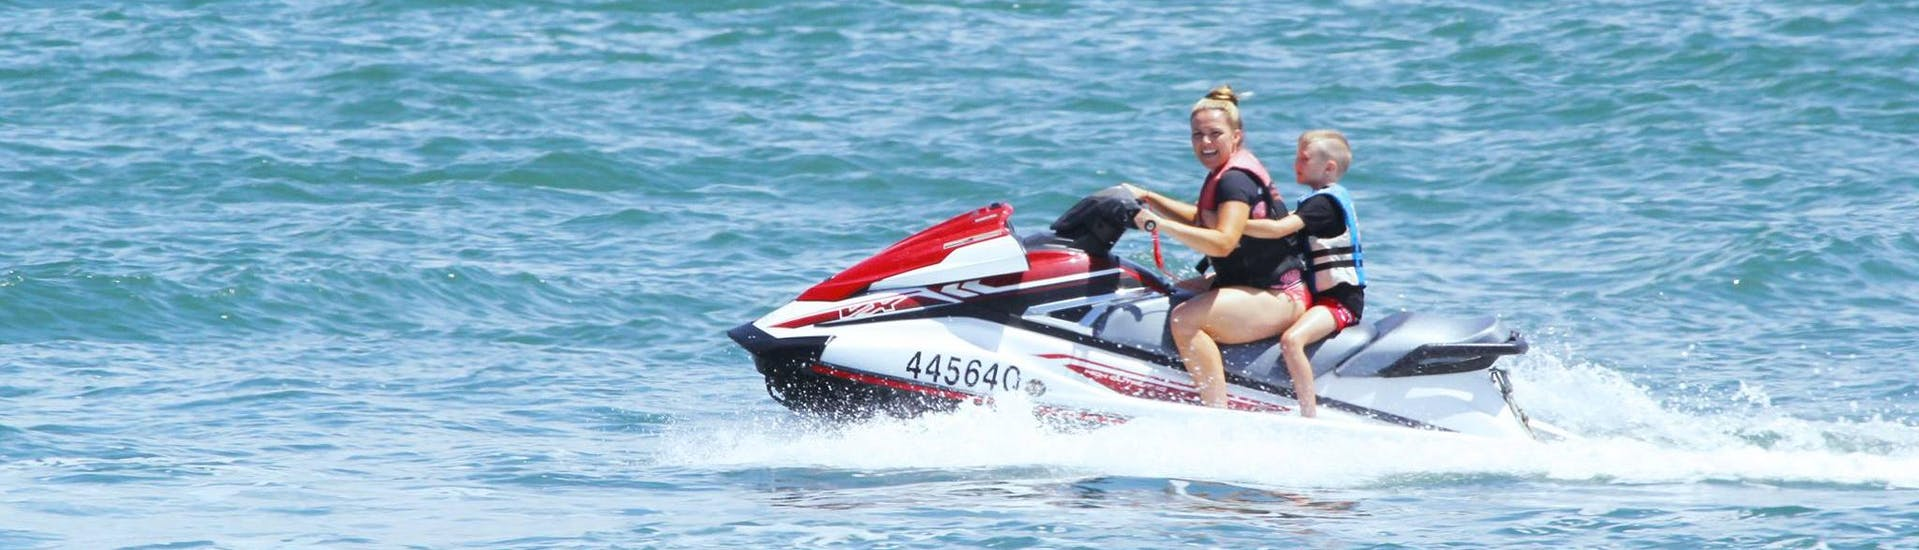 Under a supervision of an experienced instructor from Gold Coast Watersports, a mother is enjoying a jet ski ride with her son during the Jet Ski in Gold Coast - Hire.